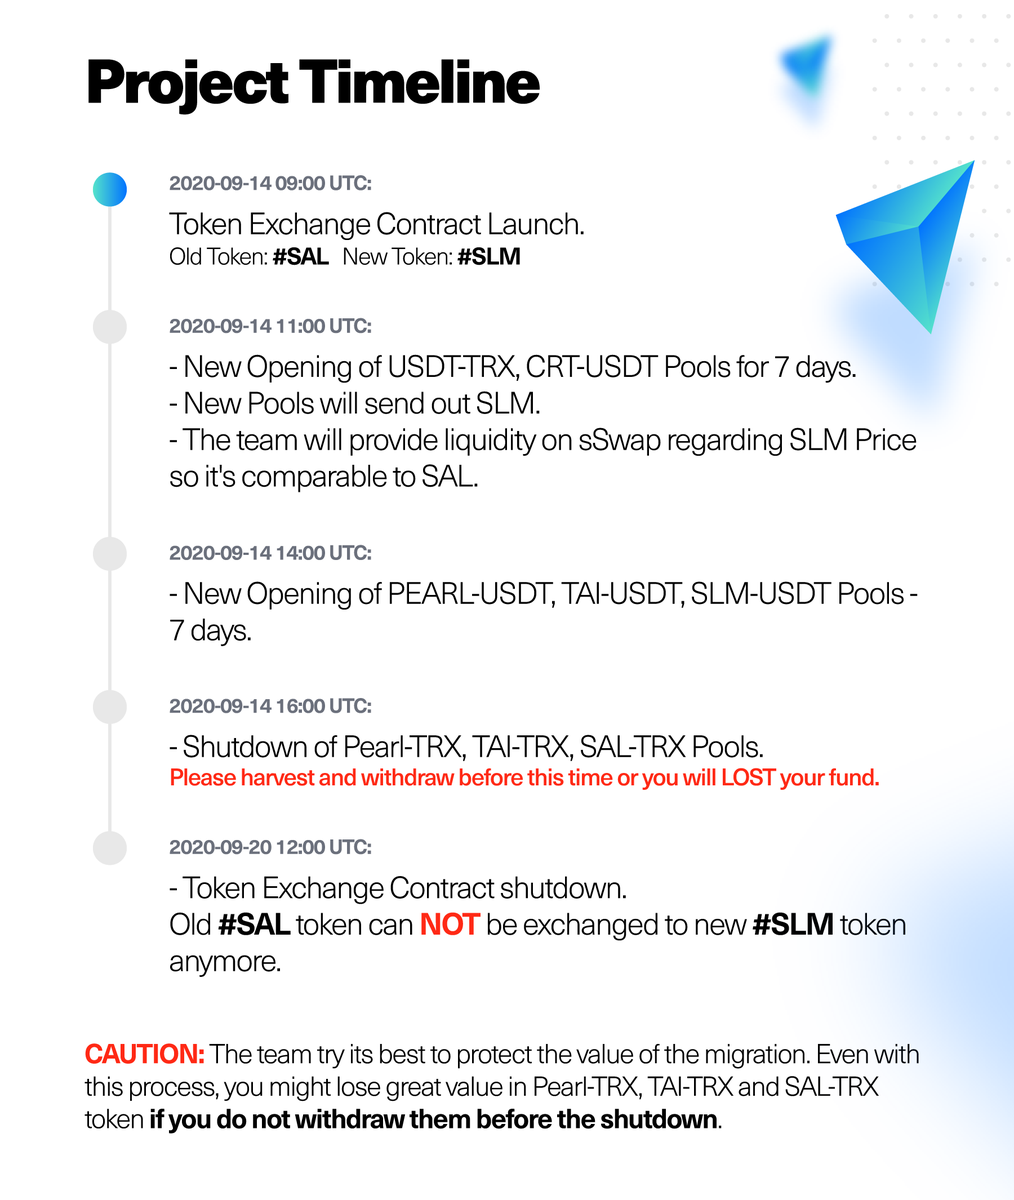 Publishing the Project Timeline for the next days!